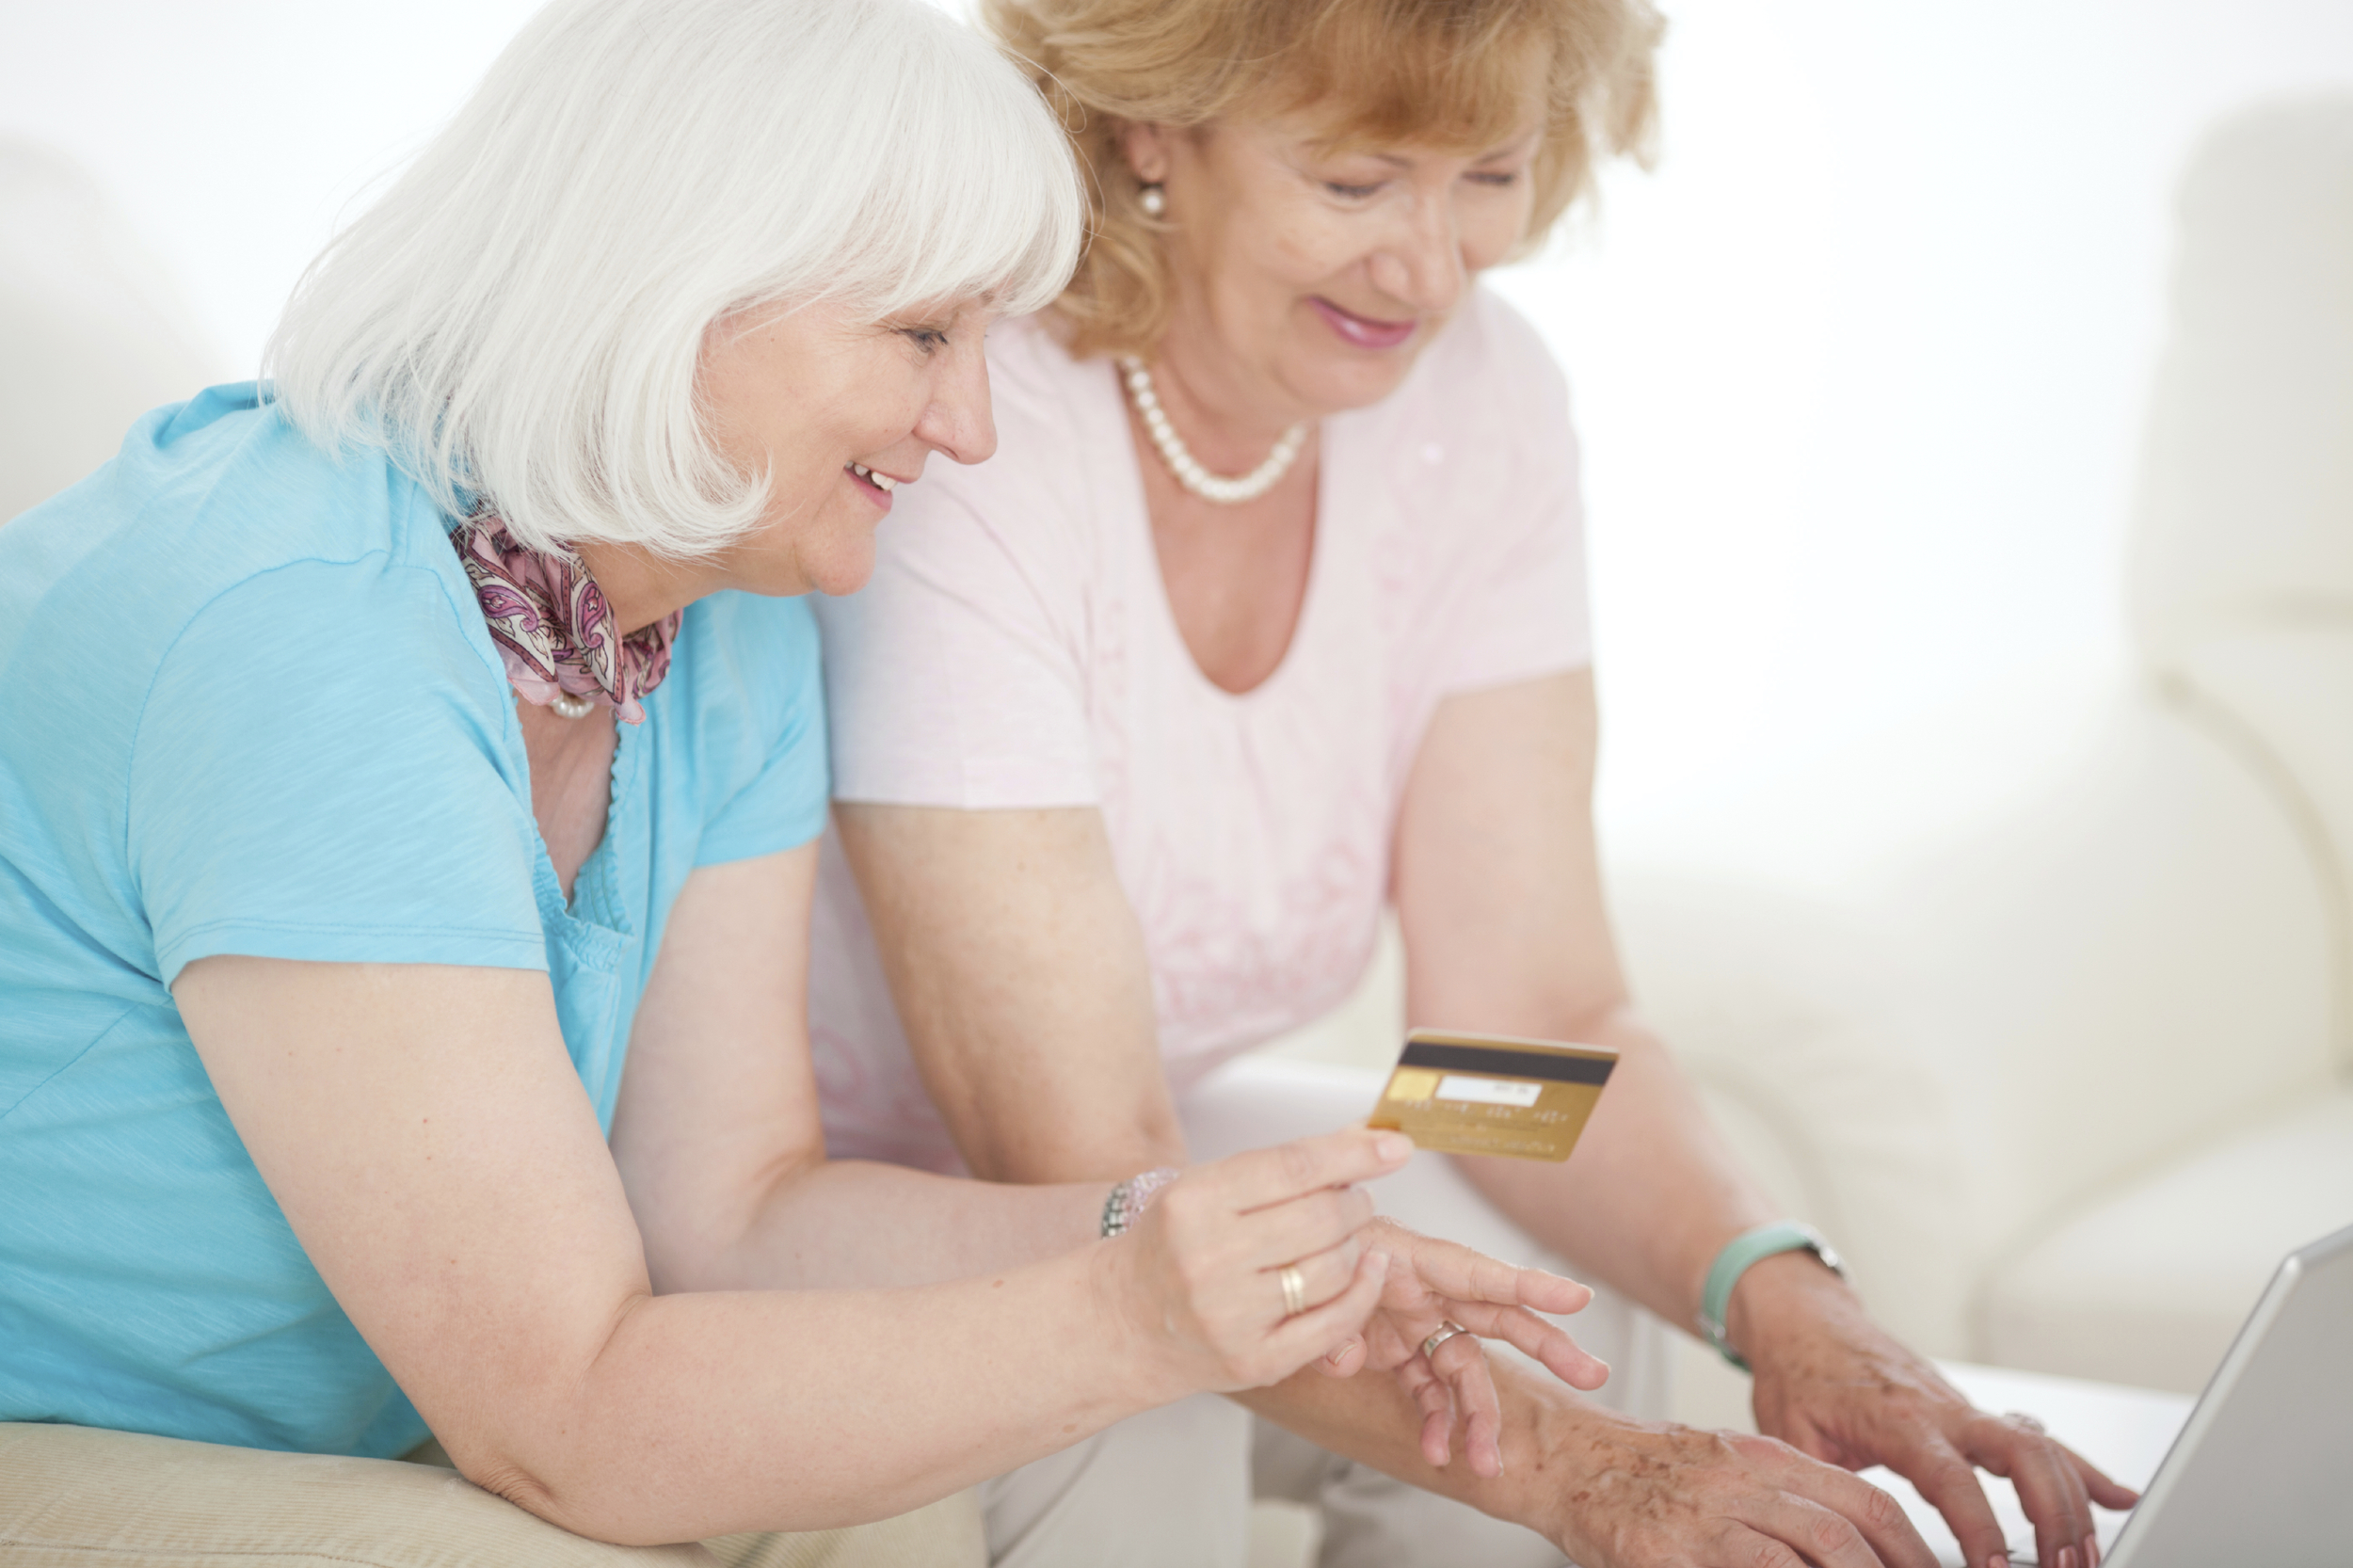 pooling-family-resources-payment-plan-oxford=health-care-home-care-tulsa